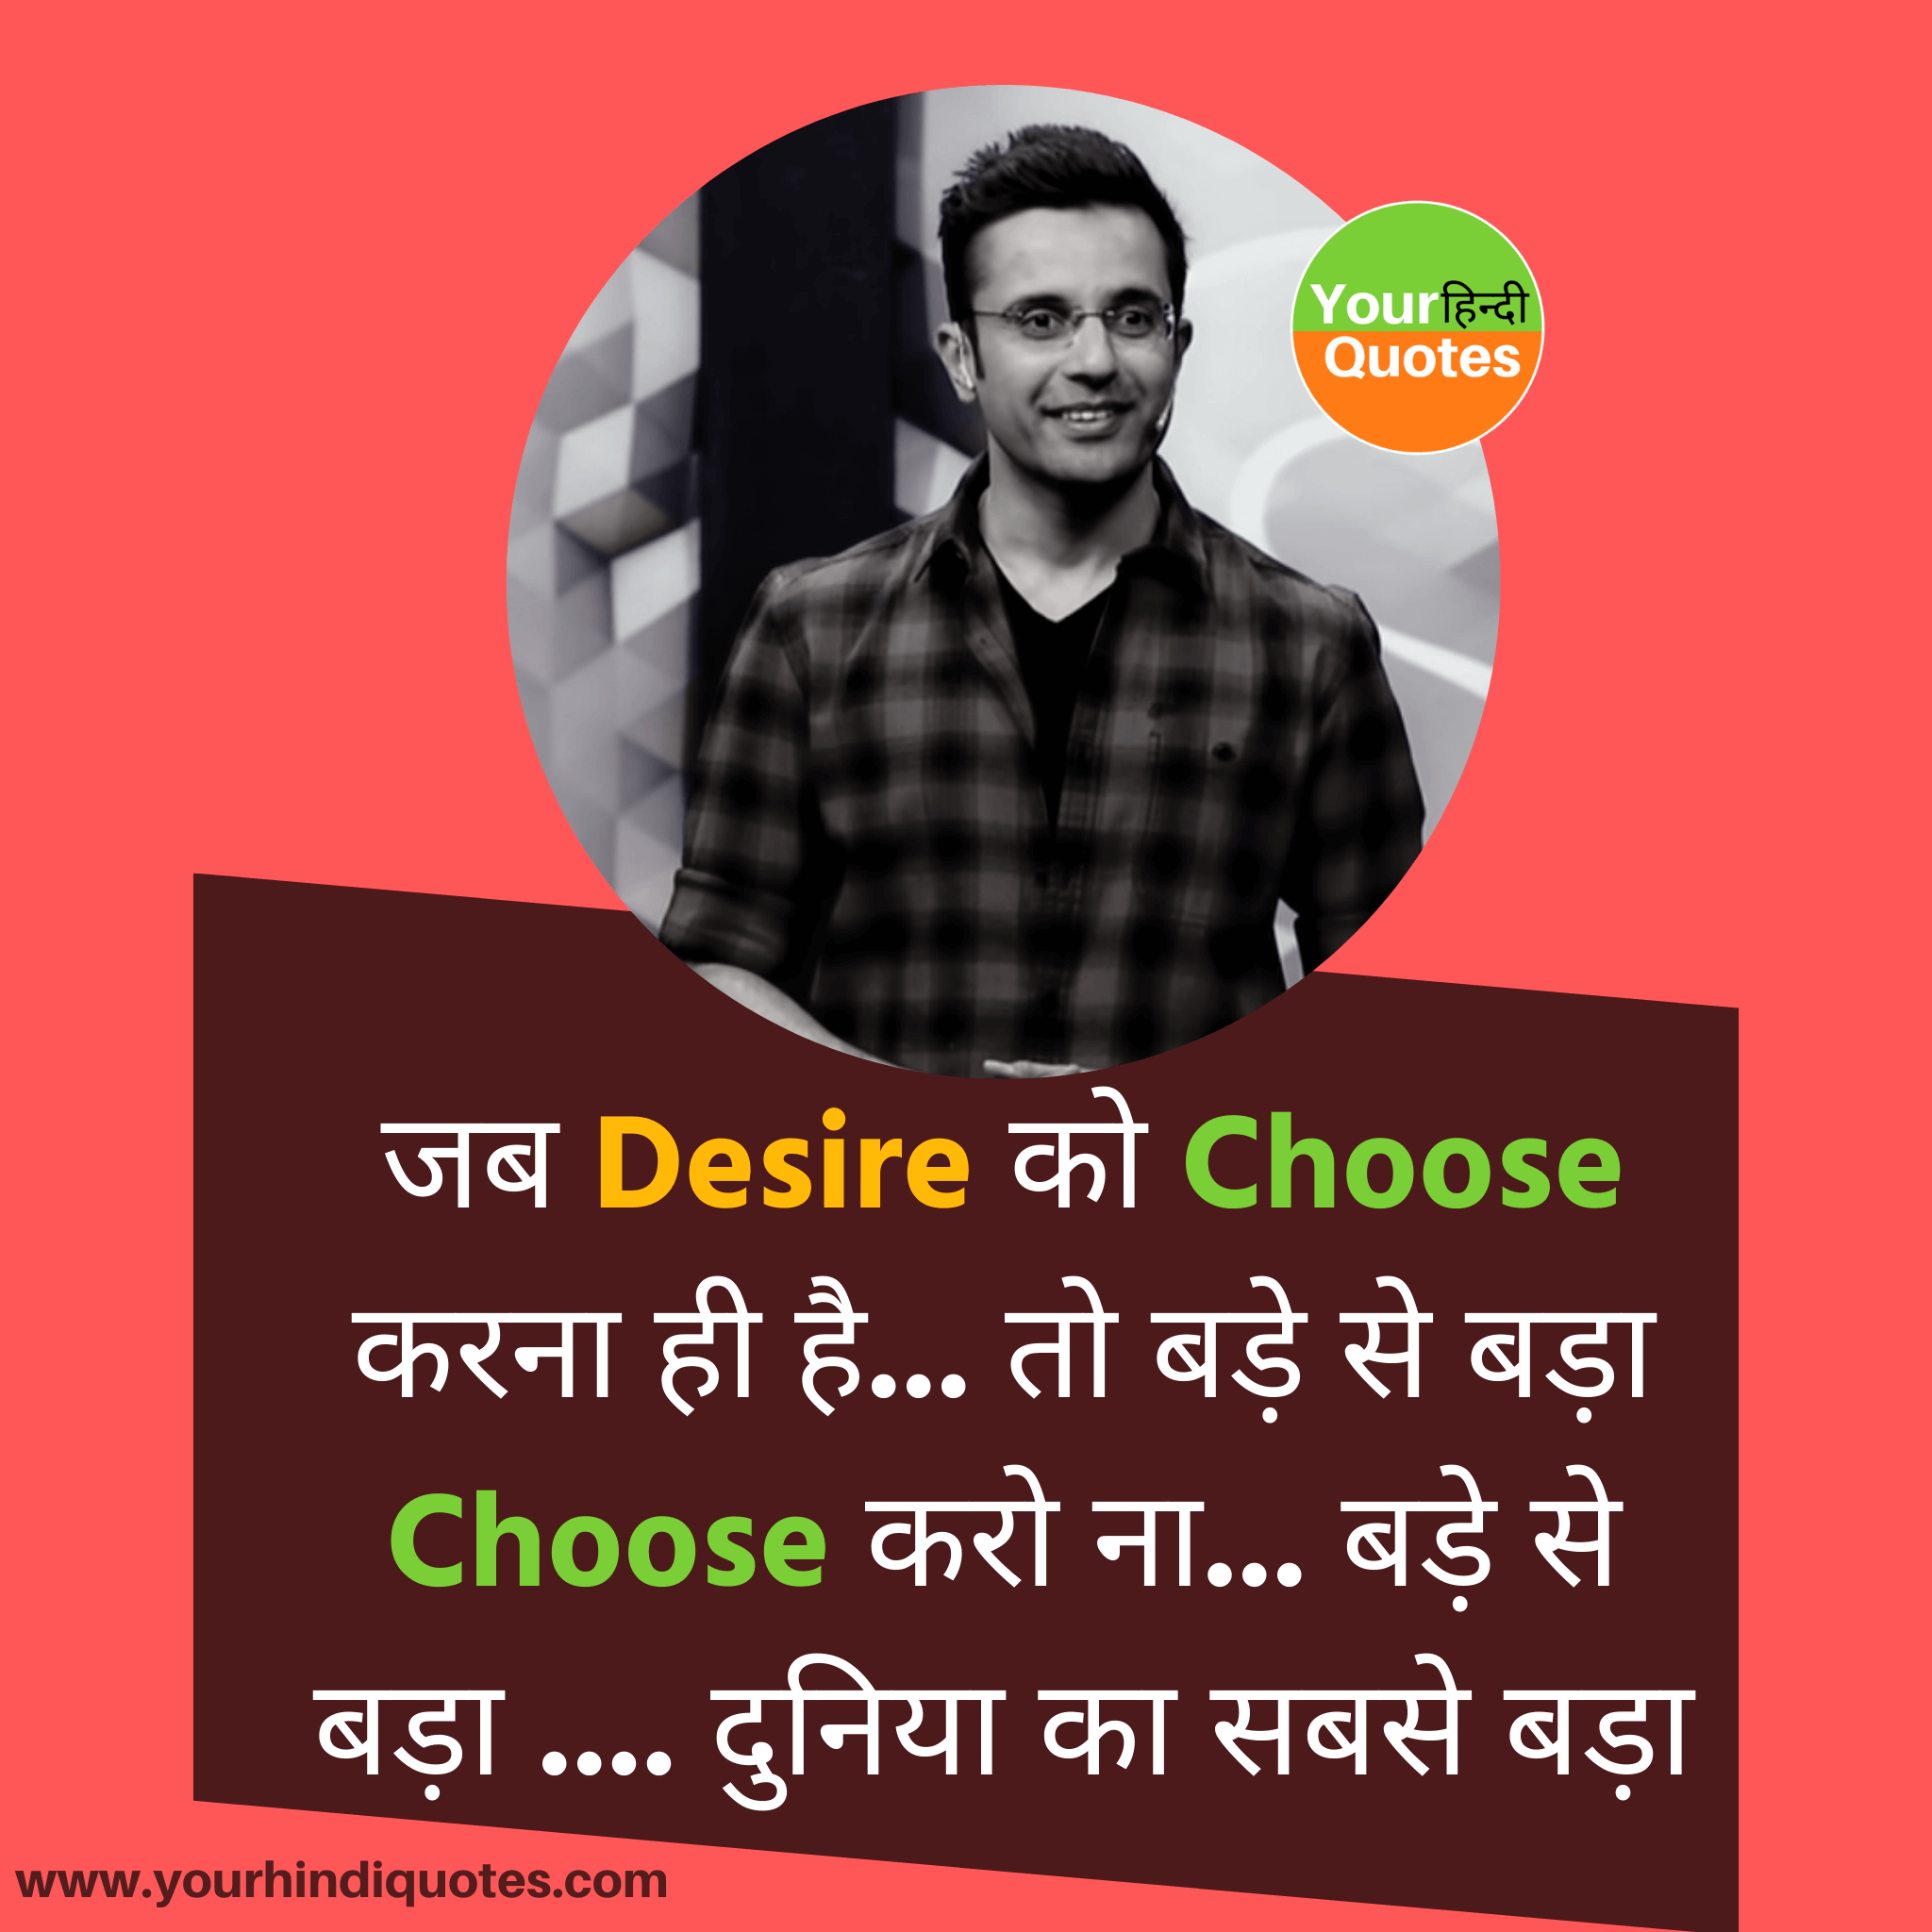 Sandeep Maheshwari Quote in Hindi